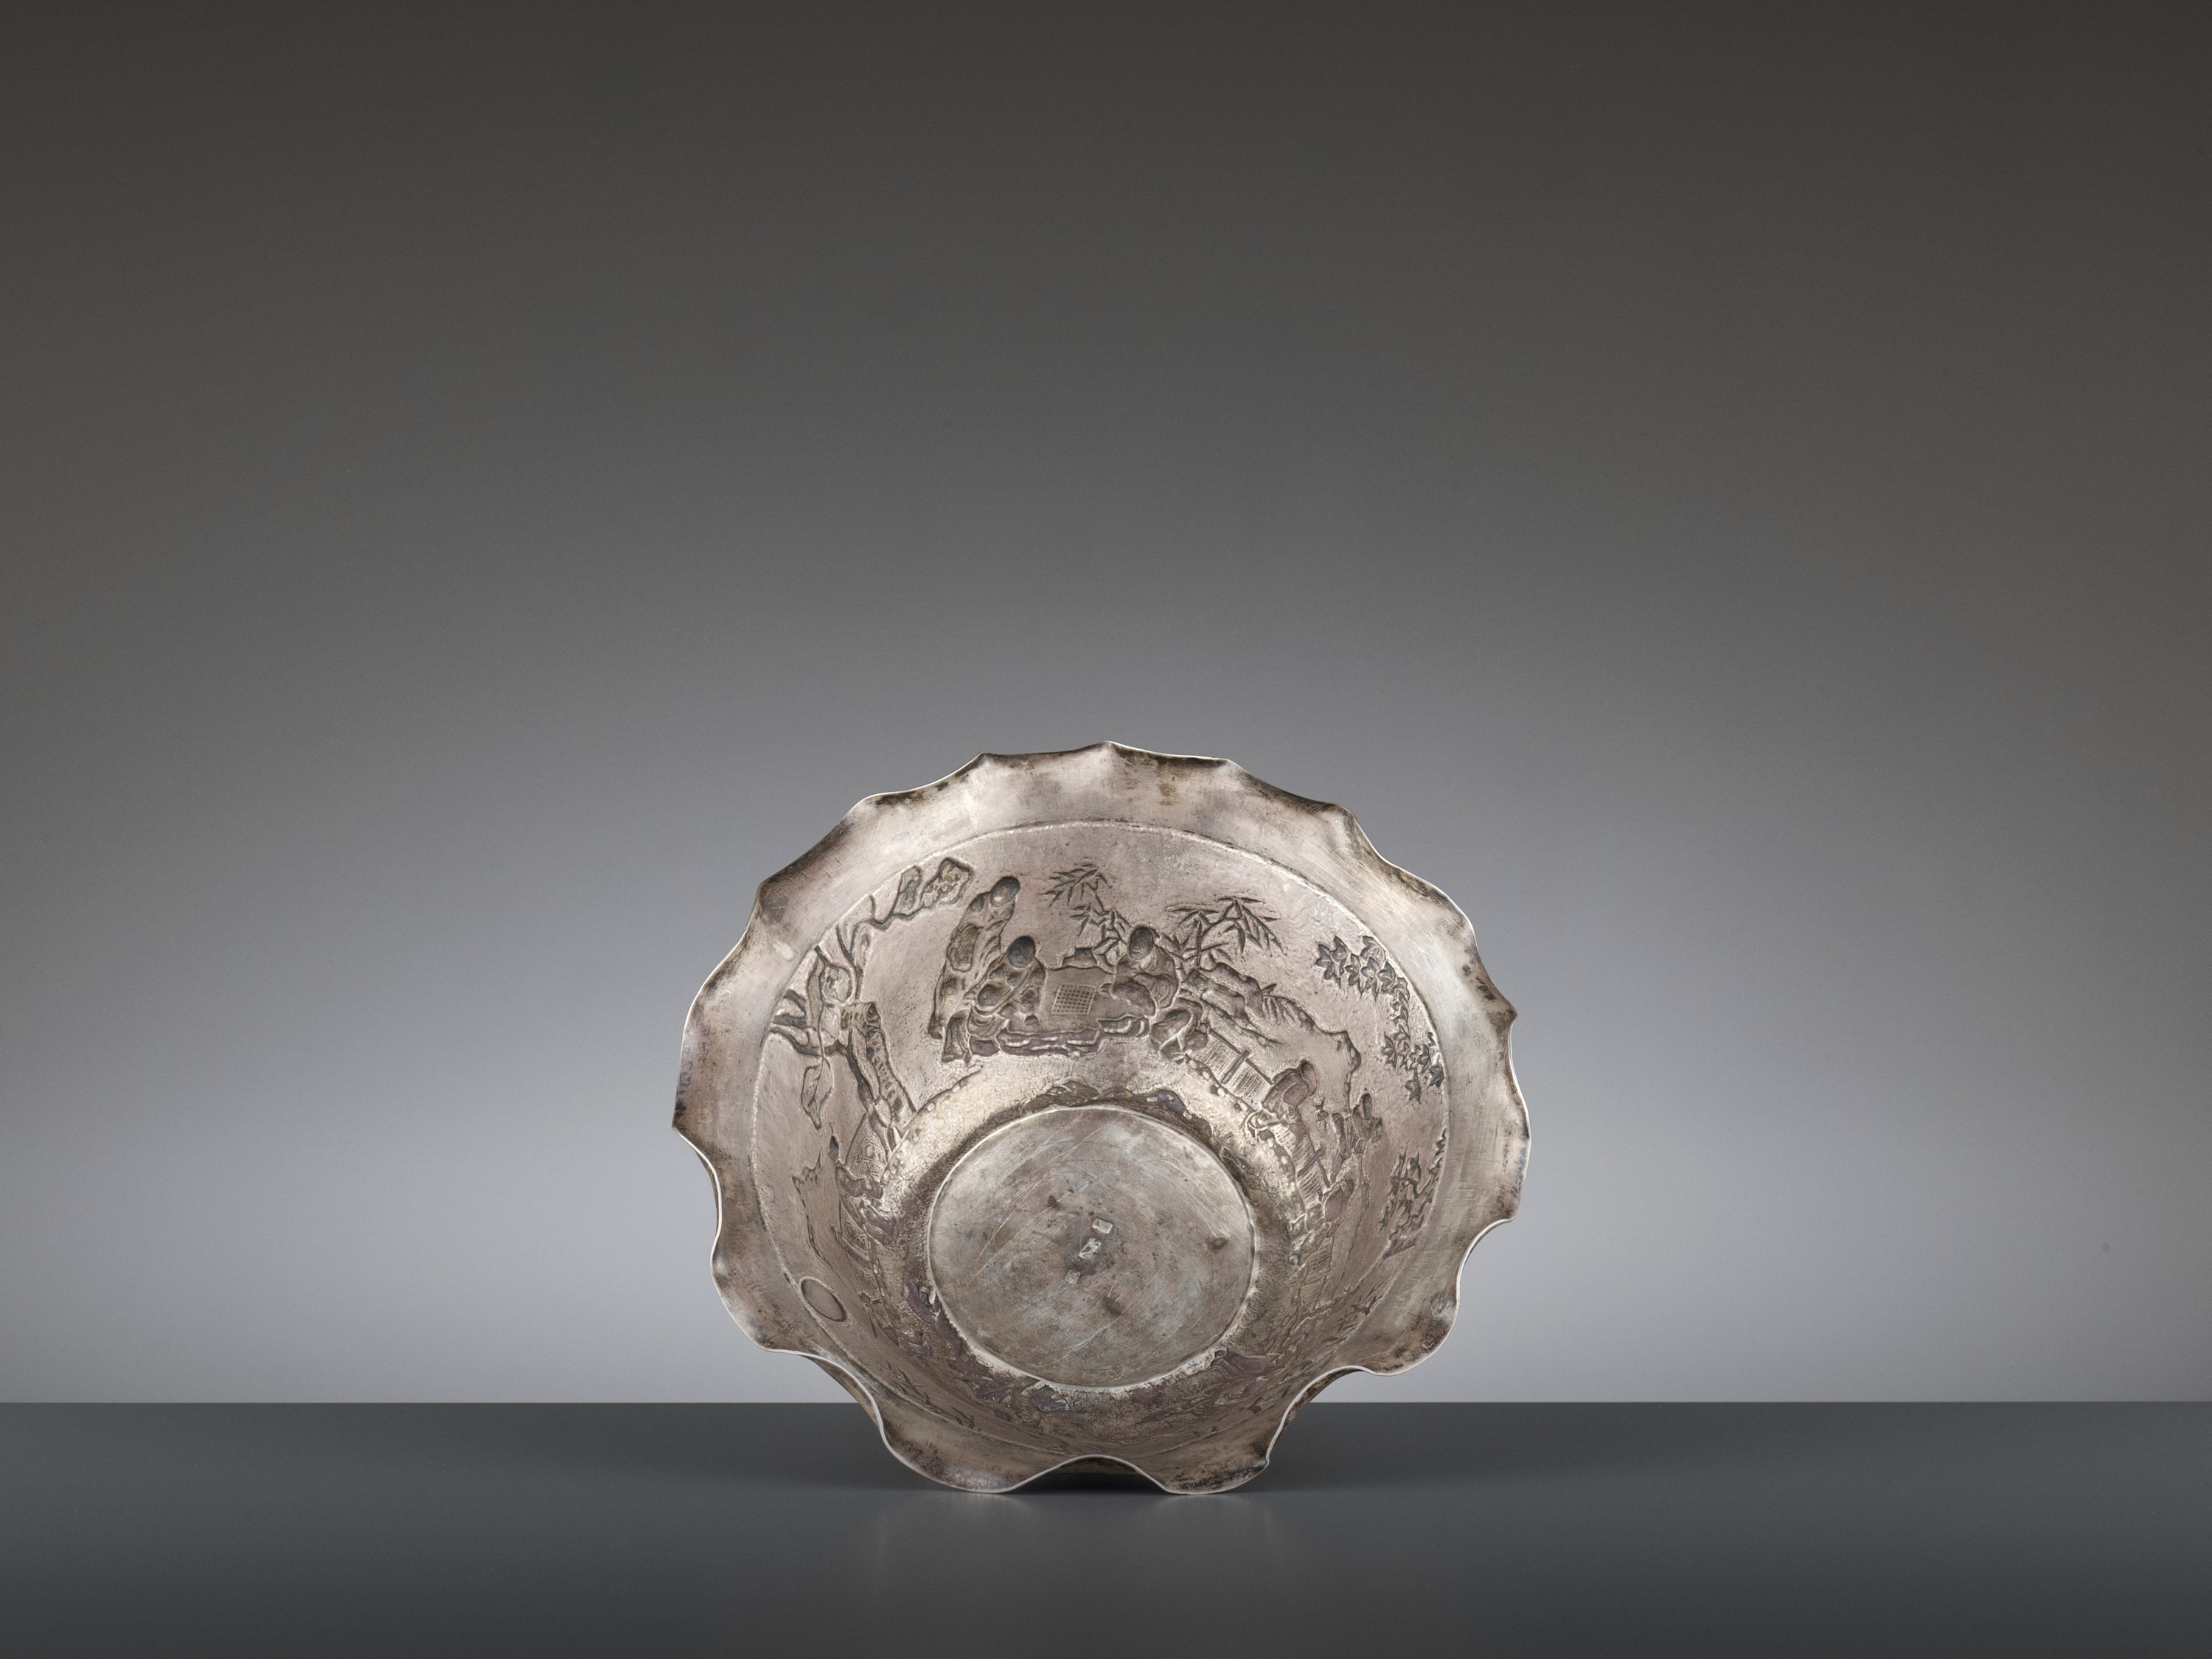 A SILVER REPOUSSE 'WEIQI PLAYERS' BOWL BY KWONG MAN SHING - Image 9 of 9